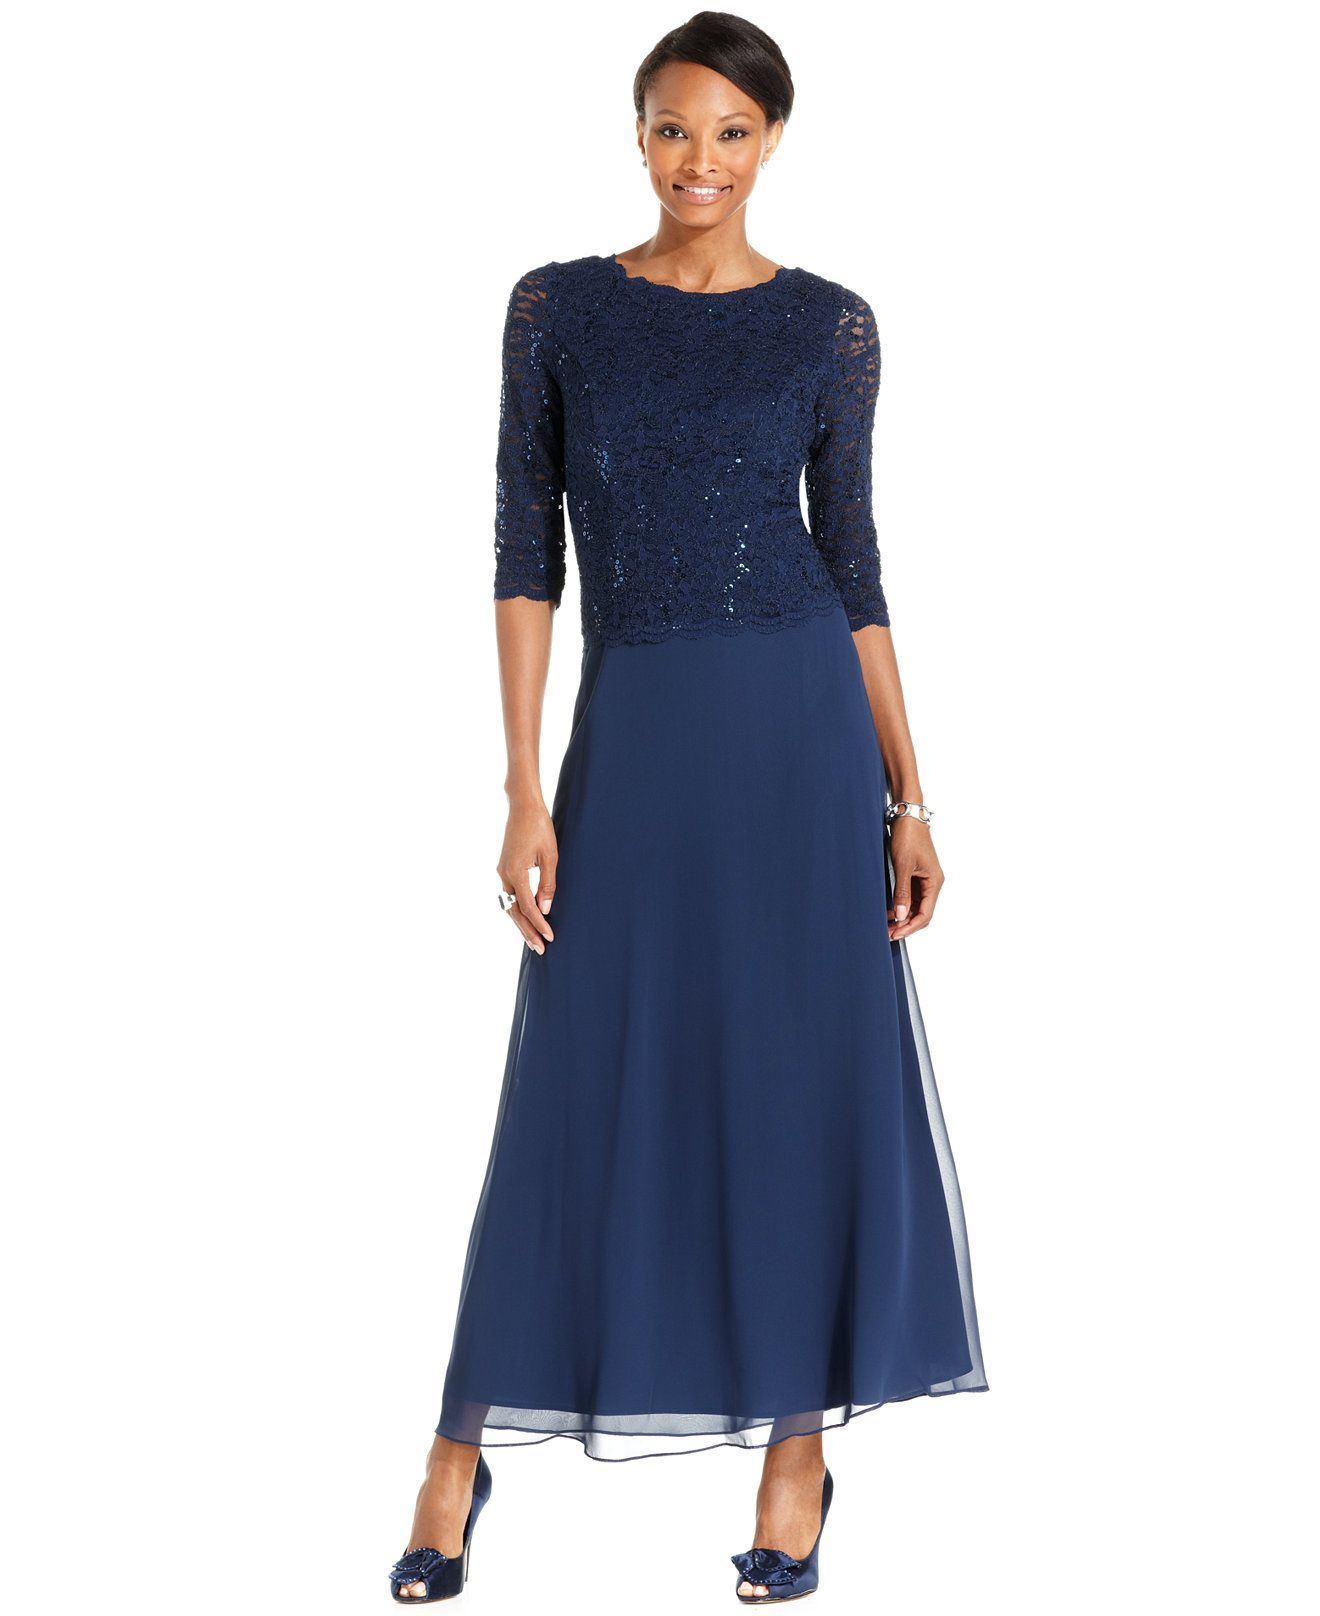 Unusual Mother Of The Bride Dresses: 12 Popular & Unique Macy's Mother Of The Bride Dresses Tea